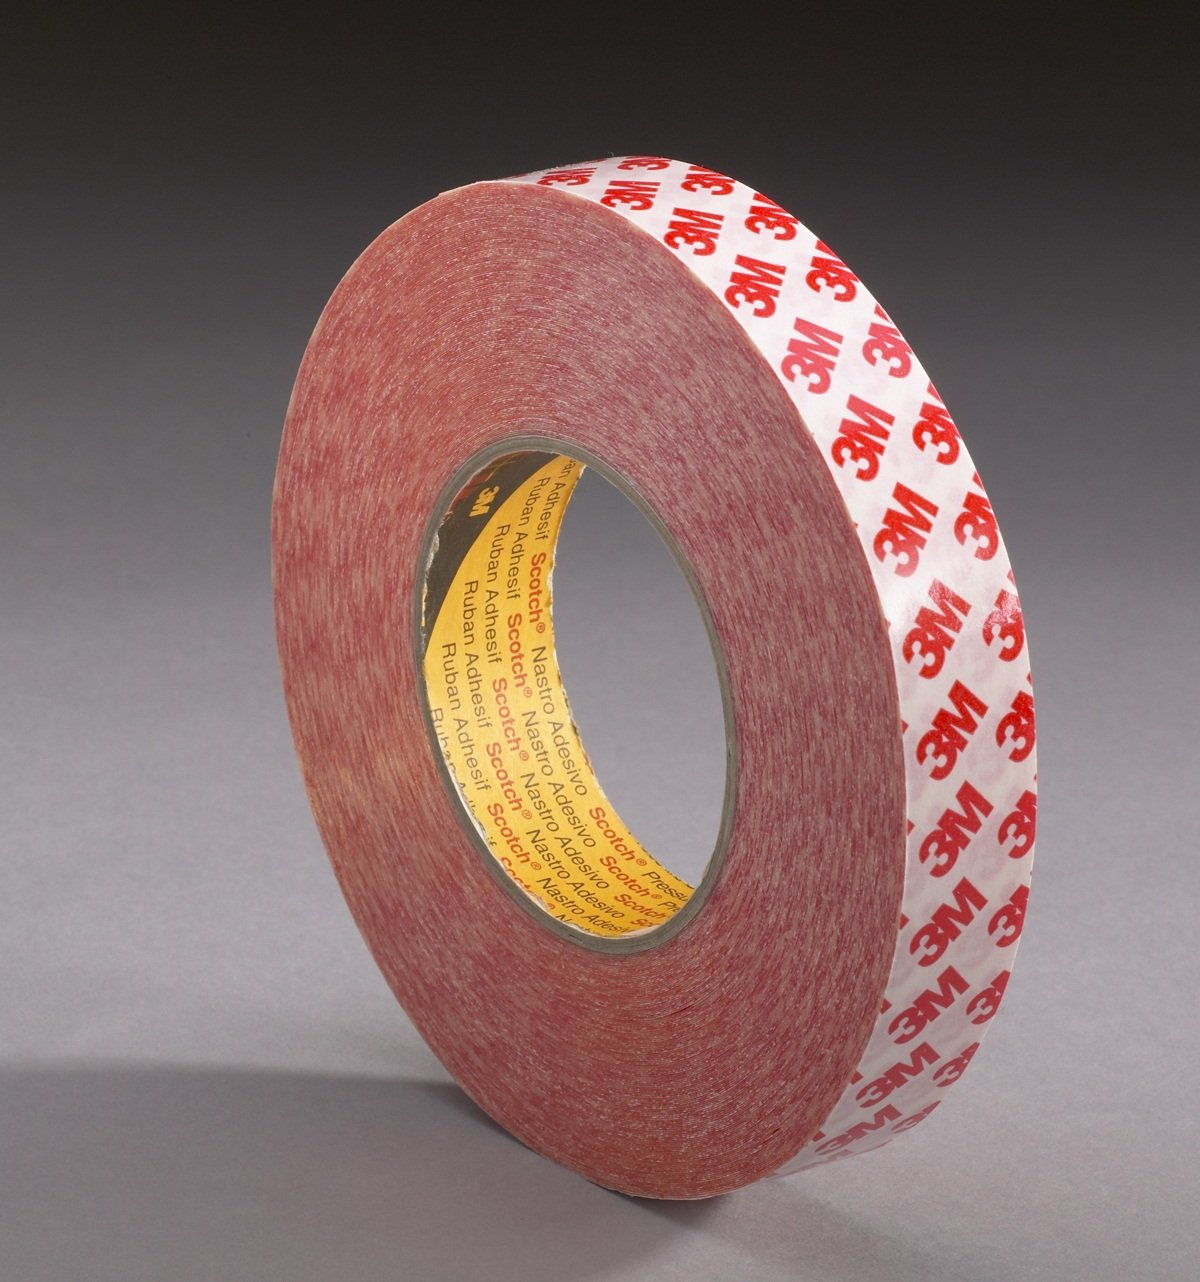 3m 9088 Double Sided High Performance Clear Tape Size 12mm X 50m Kotak Dvd 9mm Gt Pro Office Products